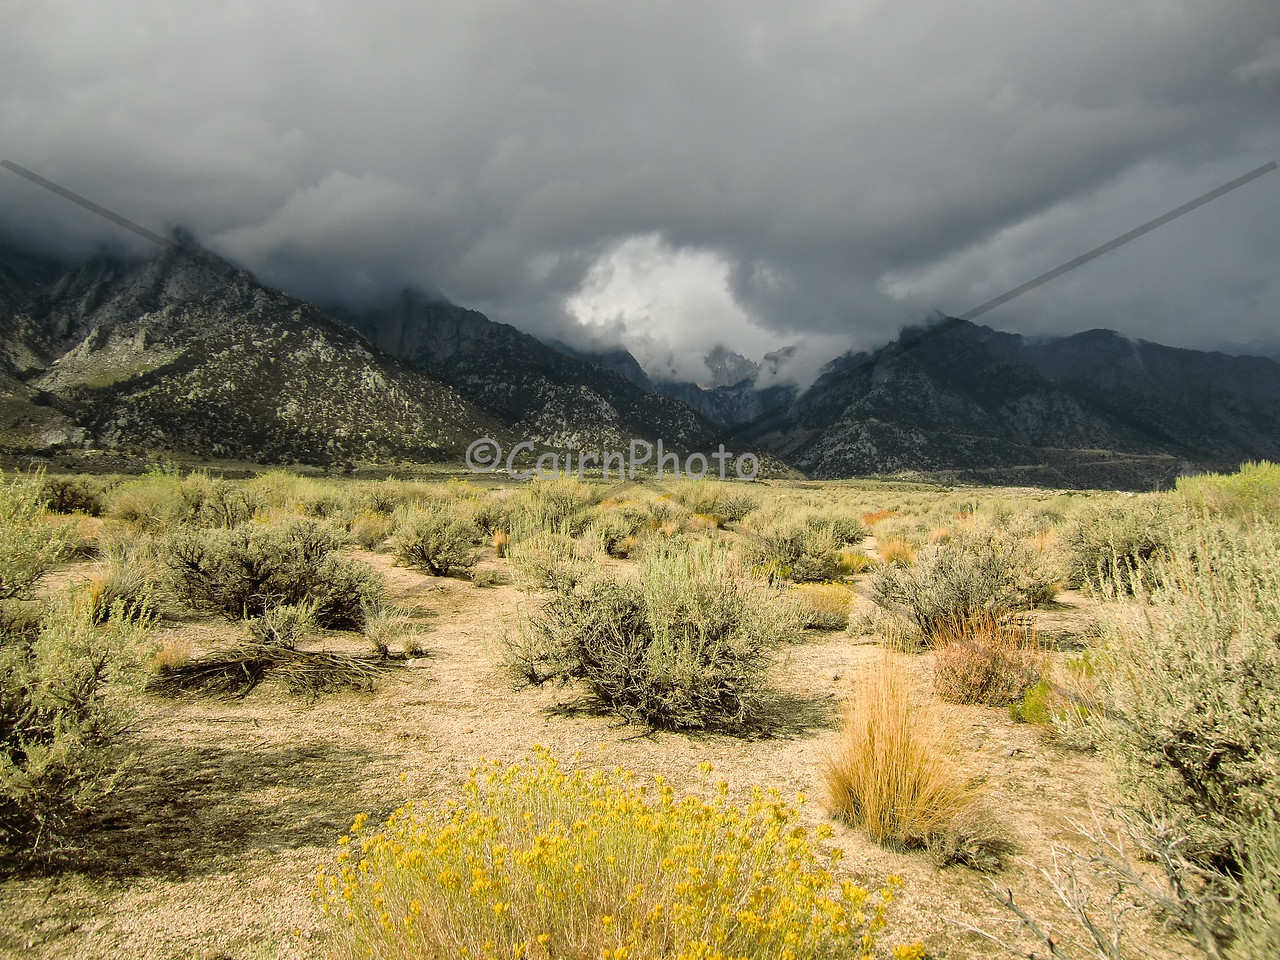 A stormy Mt. Whitney from the floor of Owens Valley.